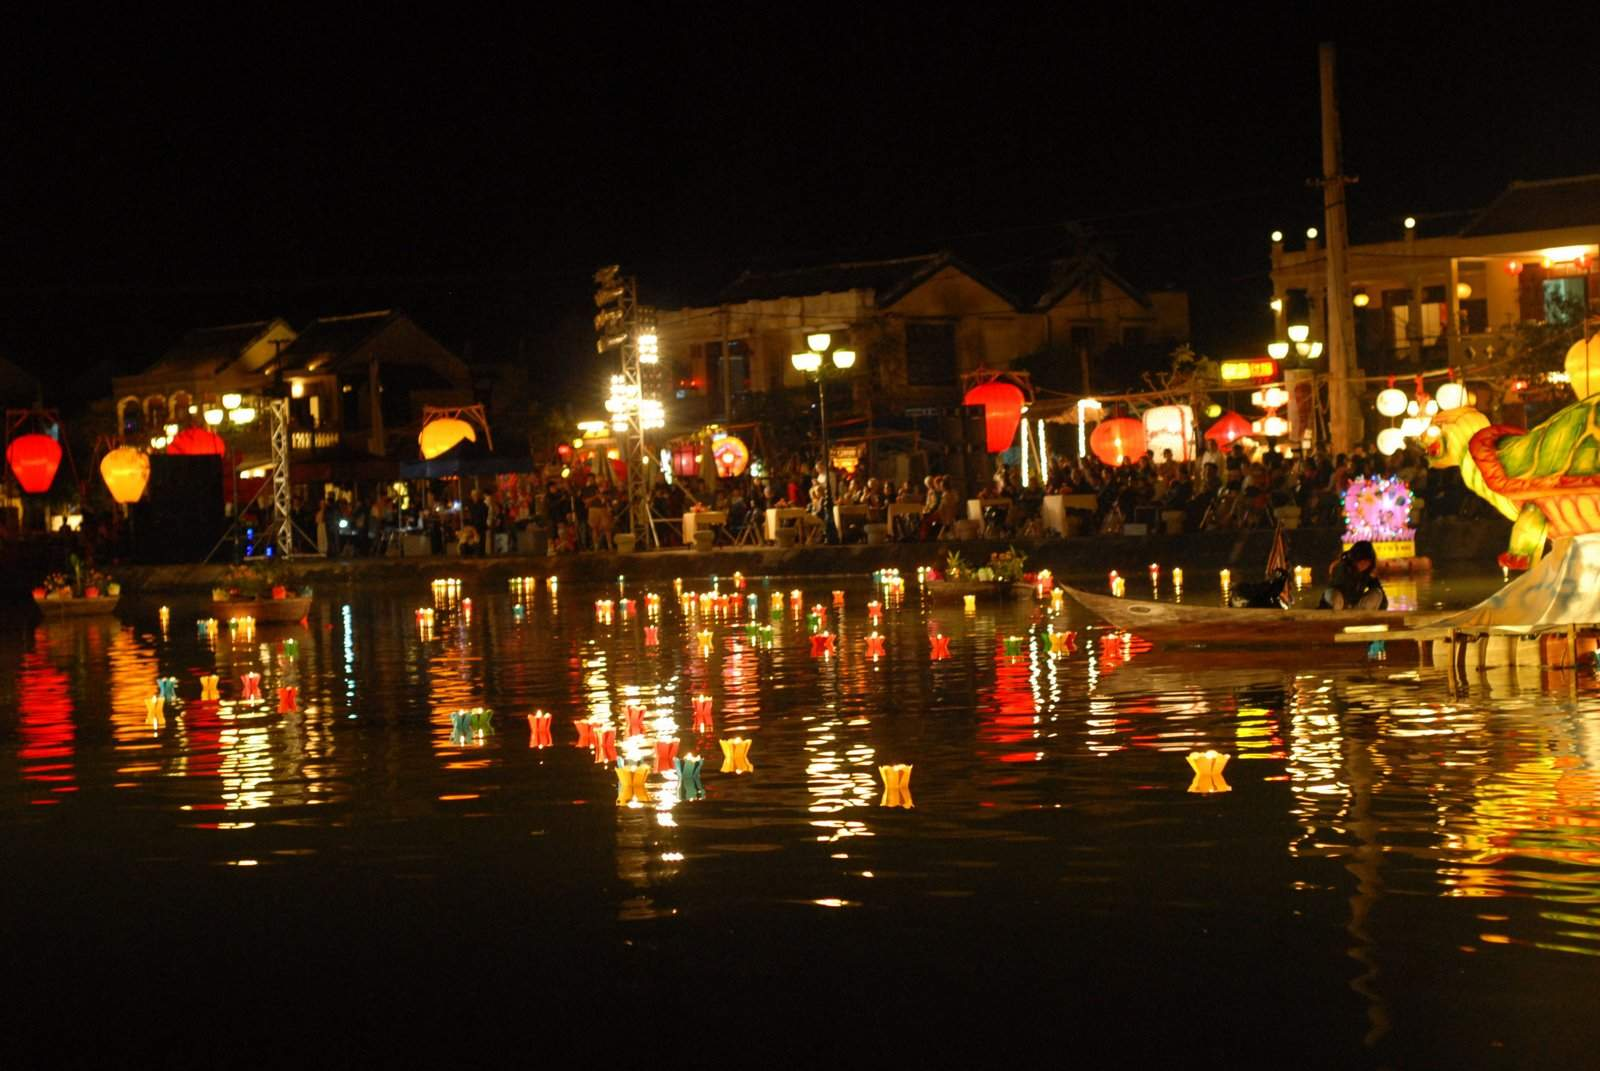 MID AUTUMN FESTIVAL - Things to do in Hoi An